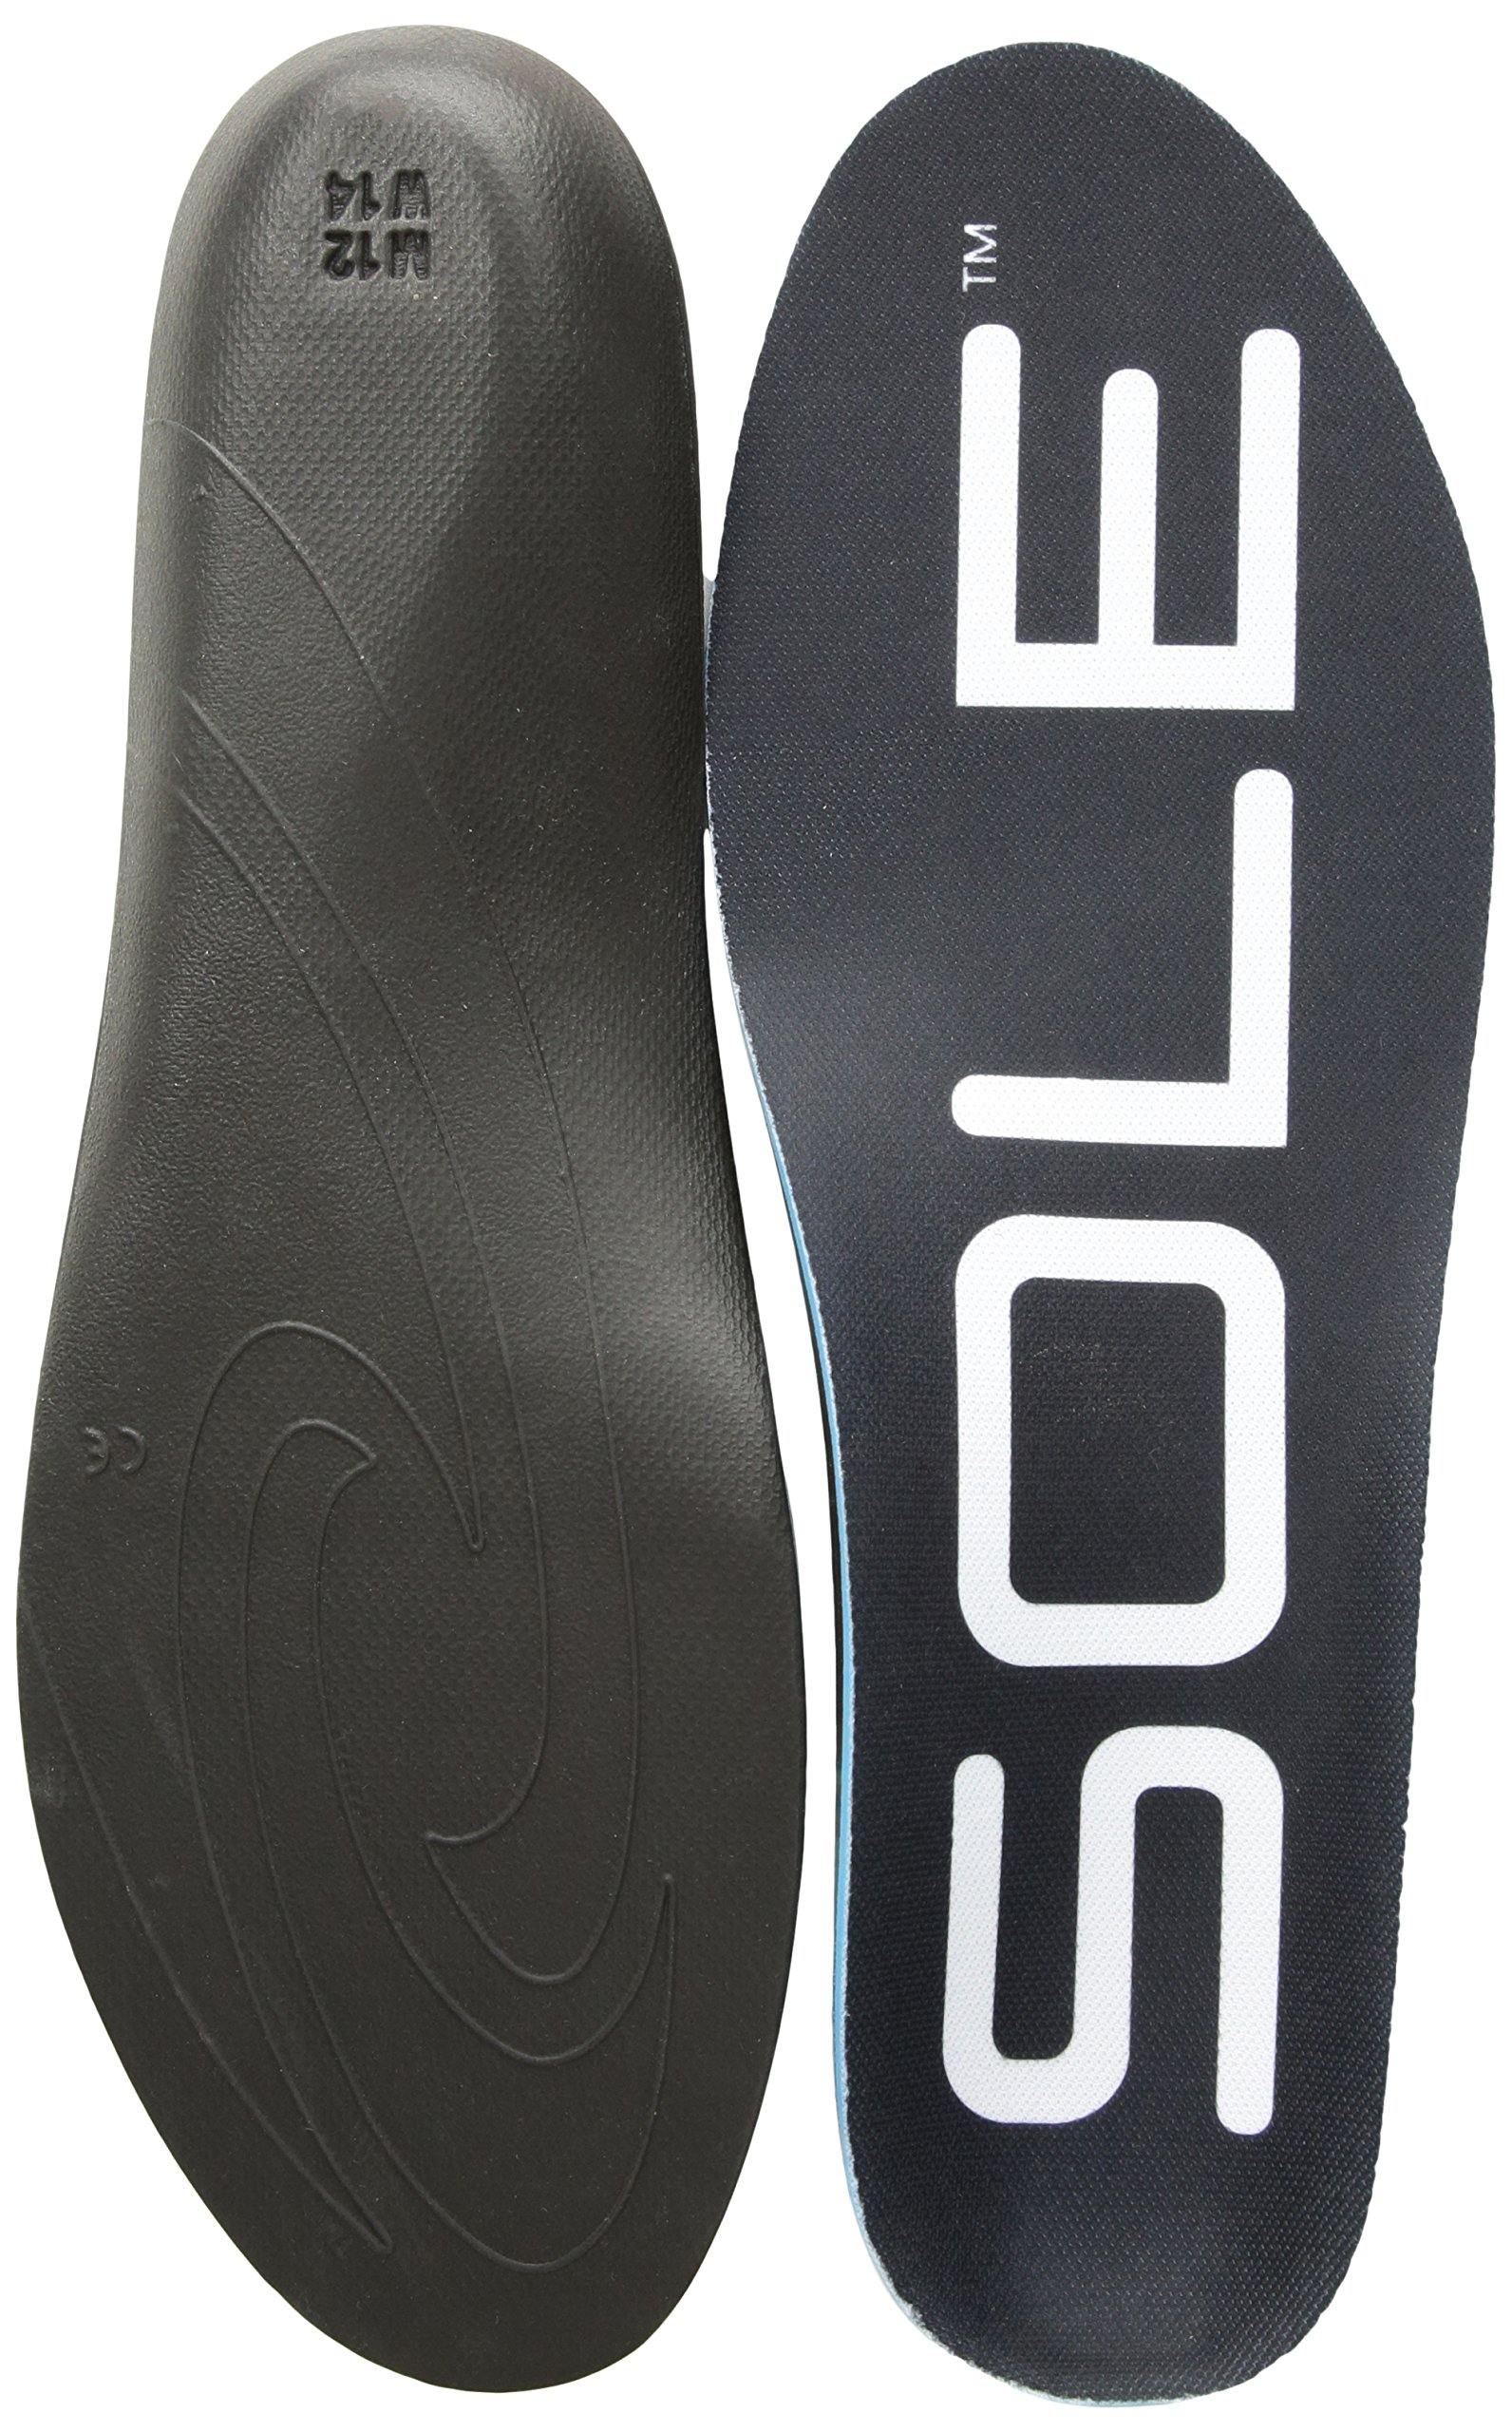 SOLE Regular Width Shoe Insoles Black Mens Size 16 / Womens Size 18 by SOLE (Image #1)